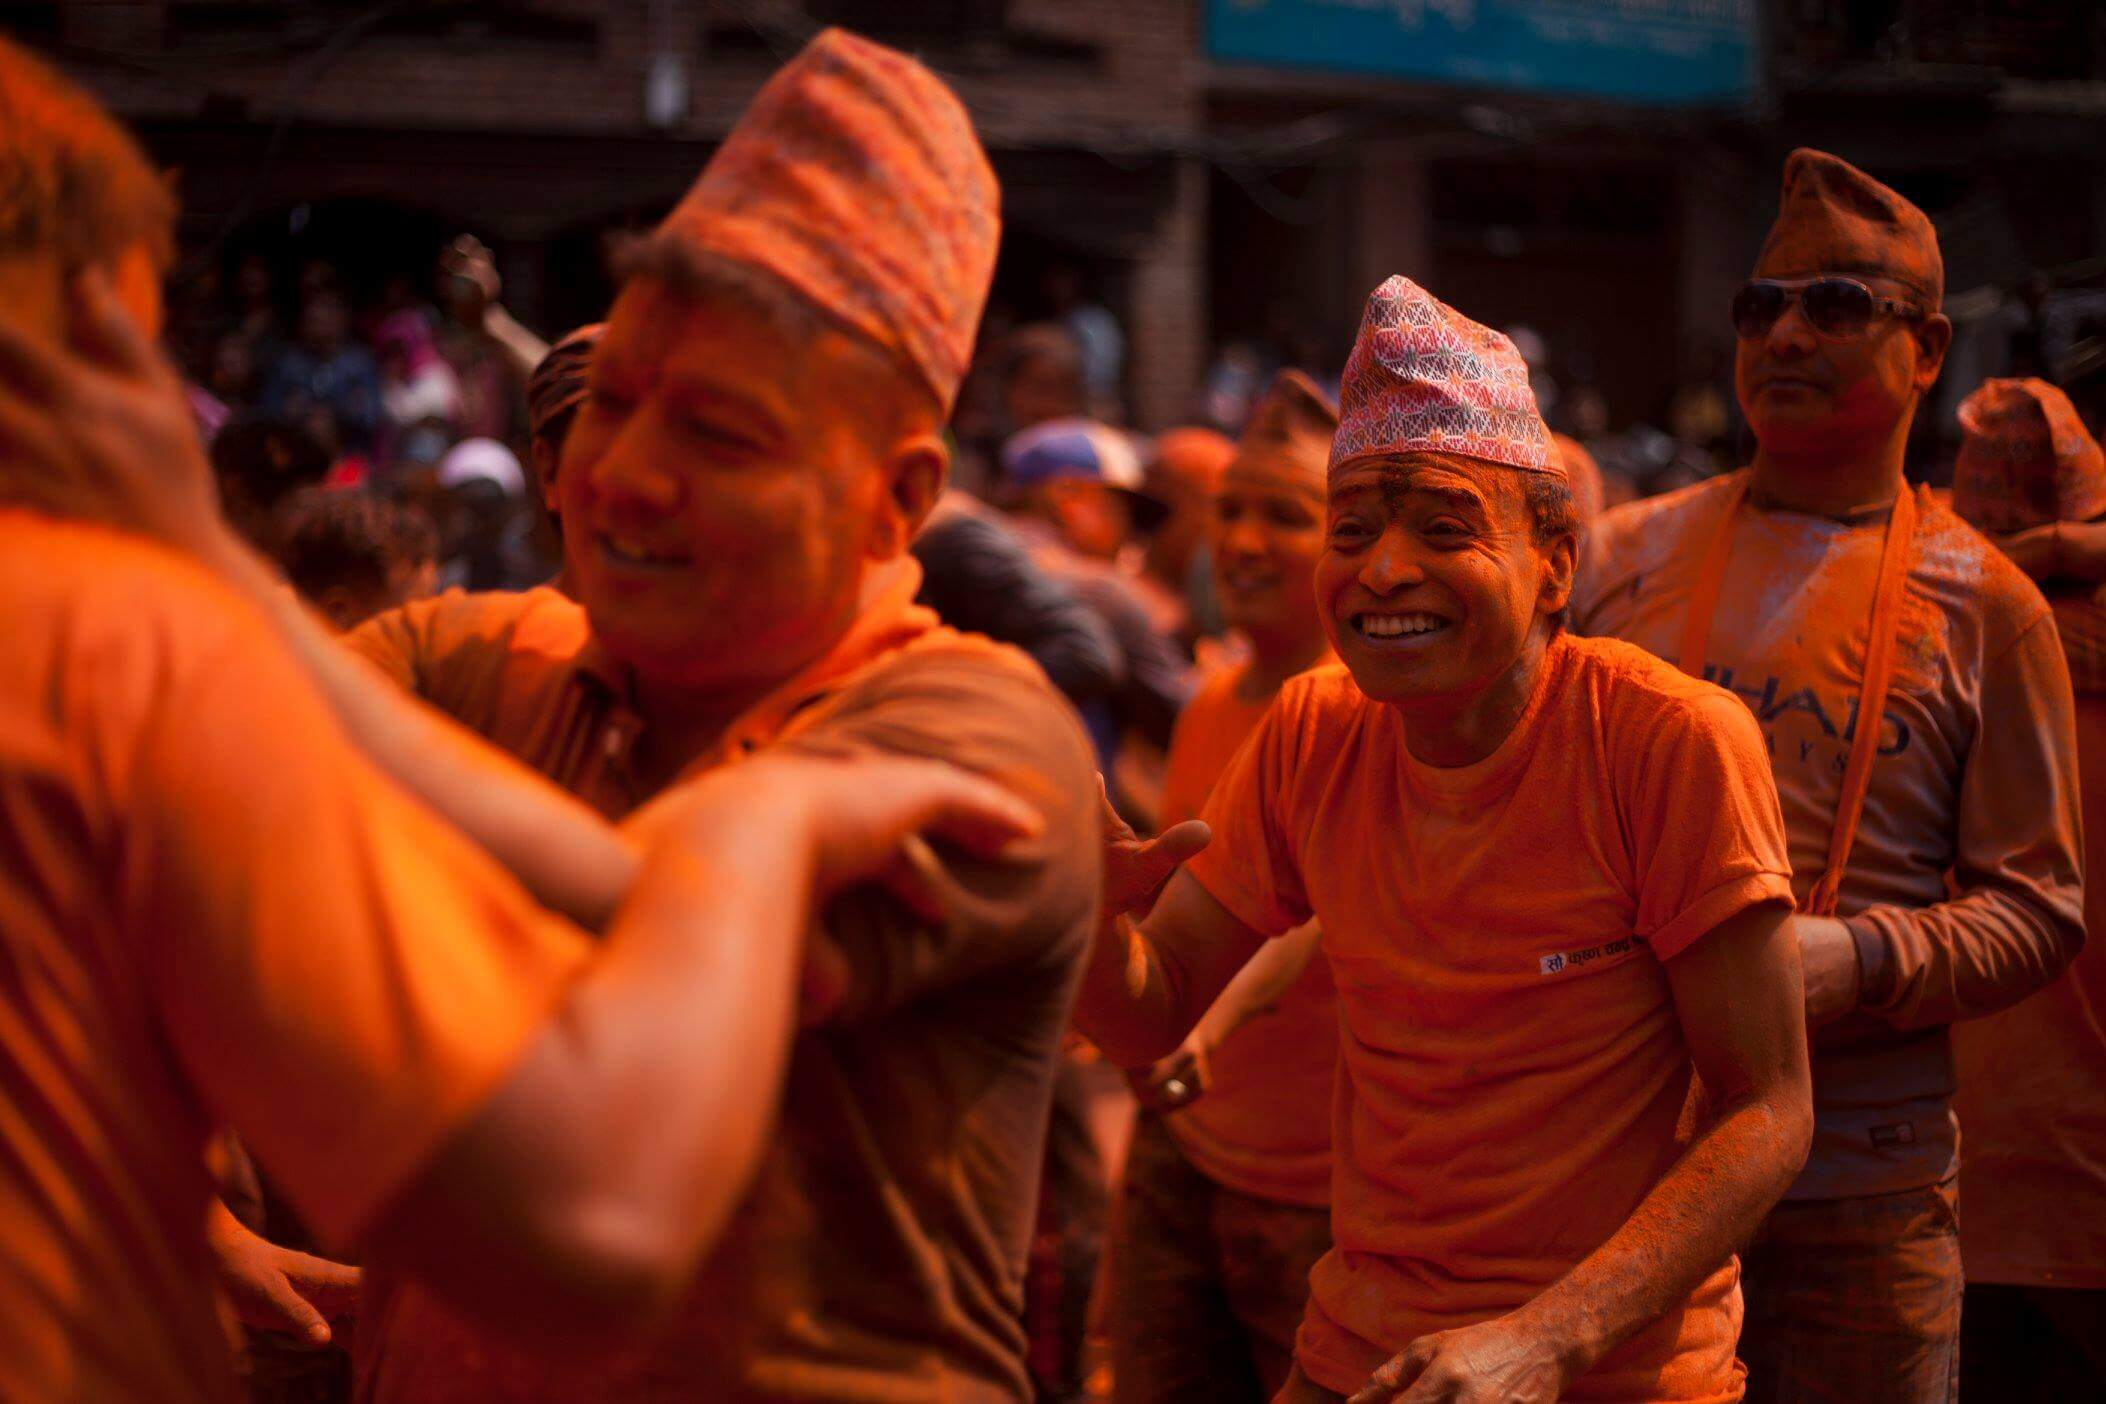 Devotees play with vermilion powder to celebrate Sindoor Jatra at Thimi on Monday. The festival is celebrated to mark the Nepali New Year and the beginning of the spring season.